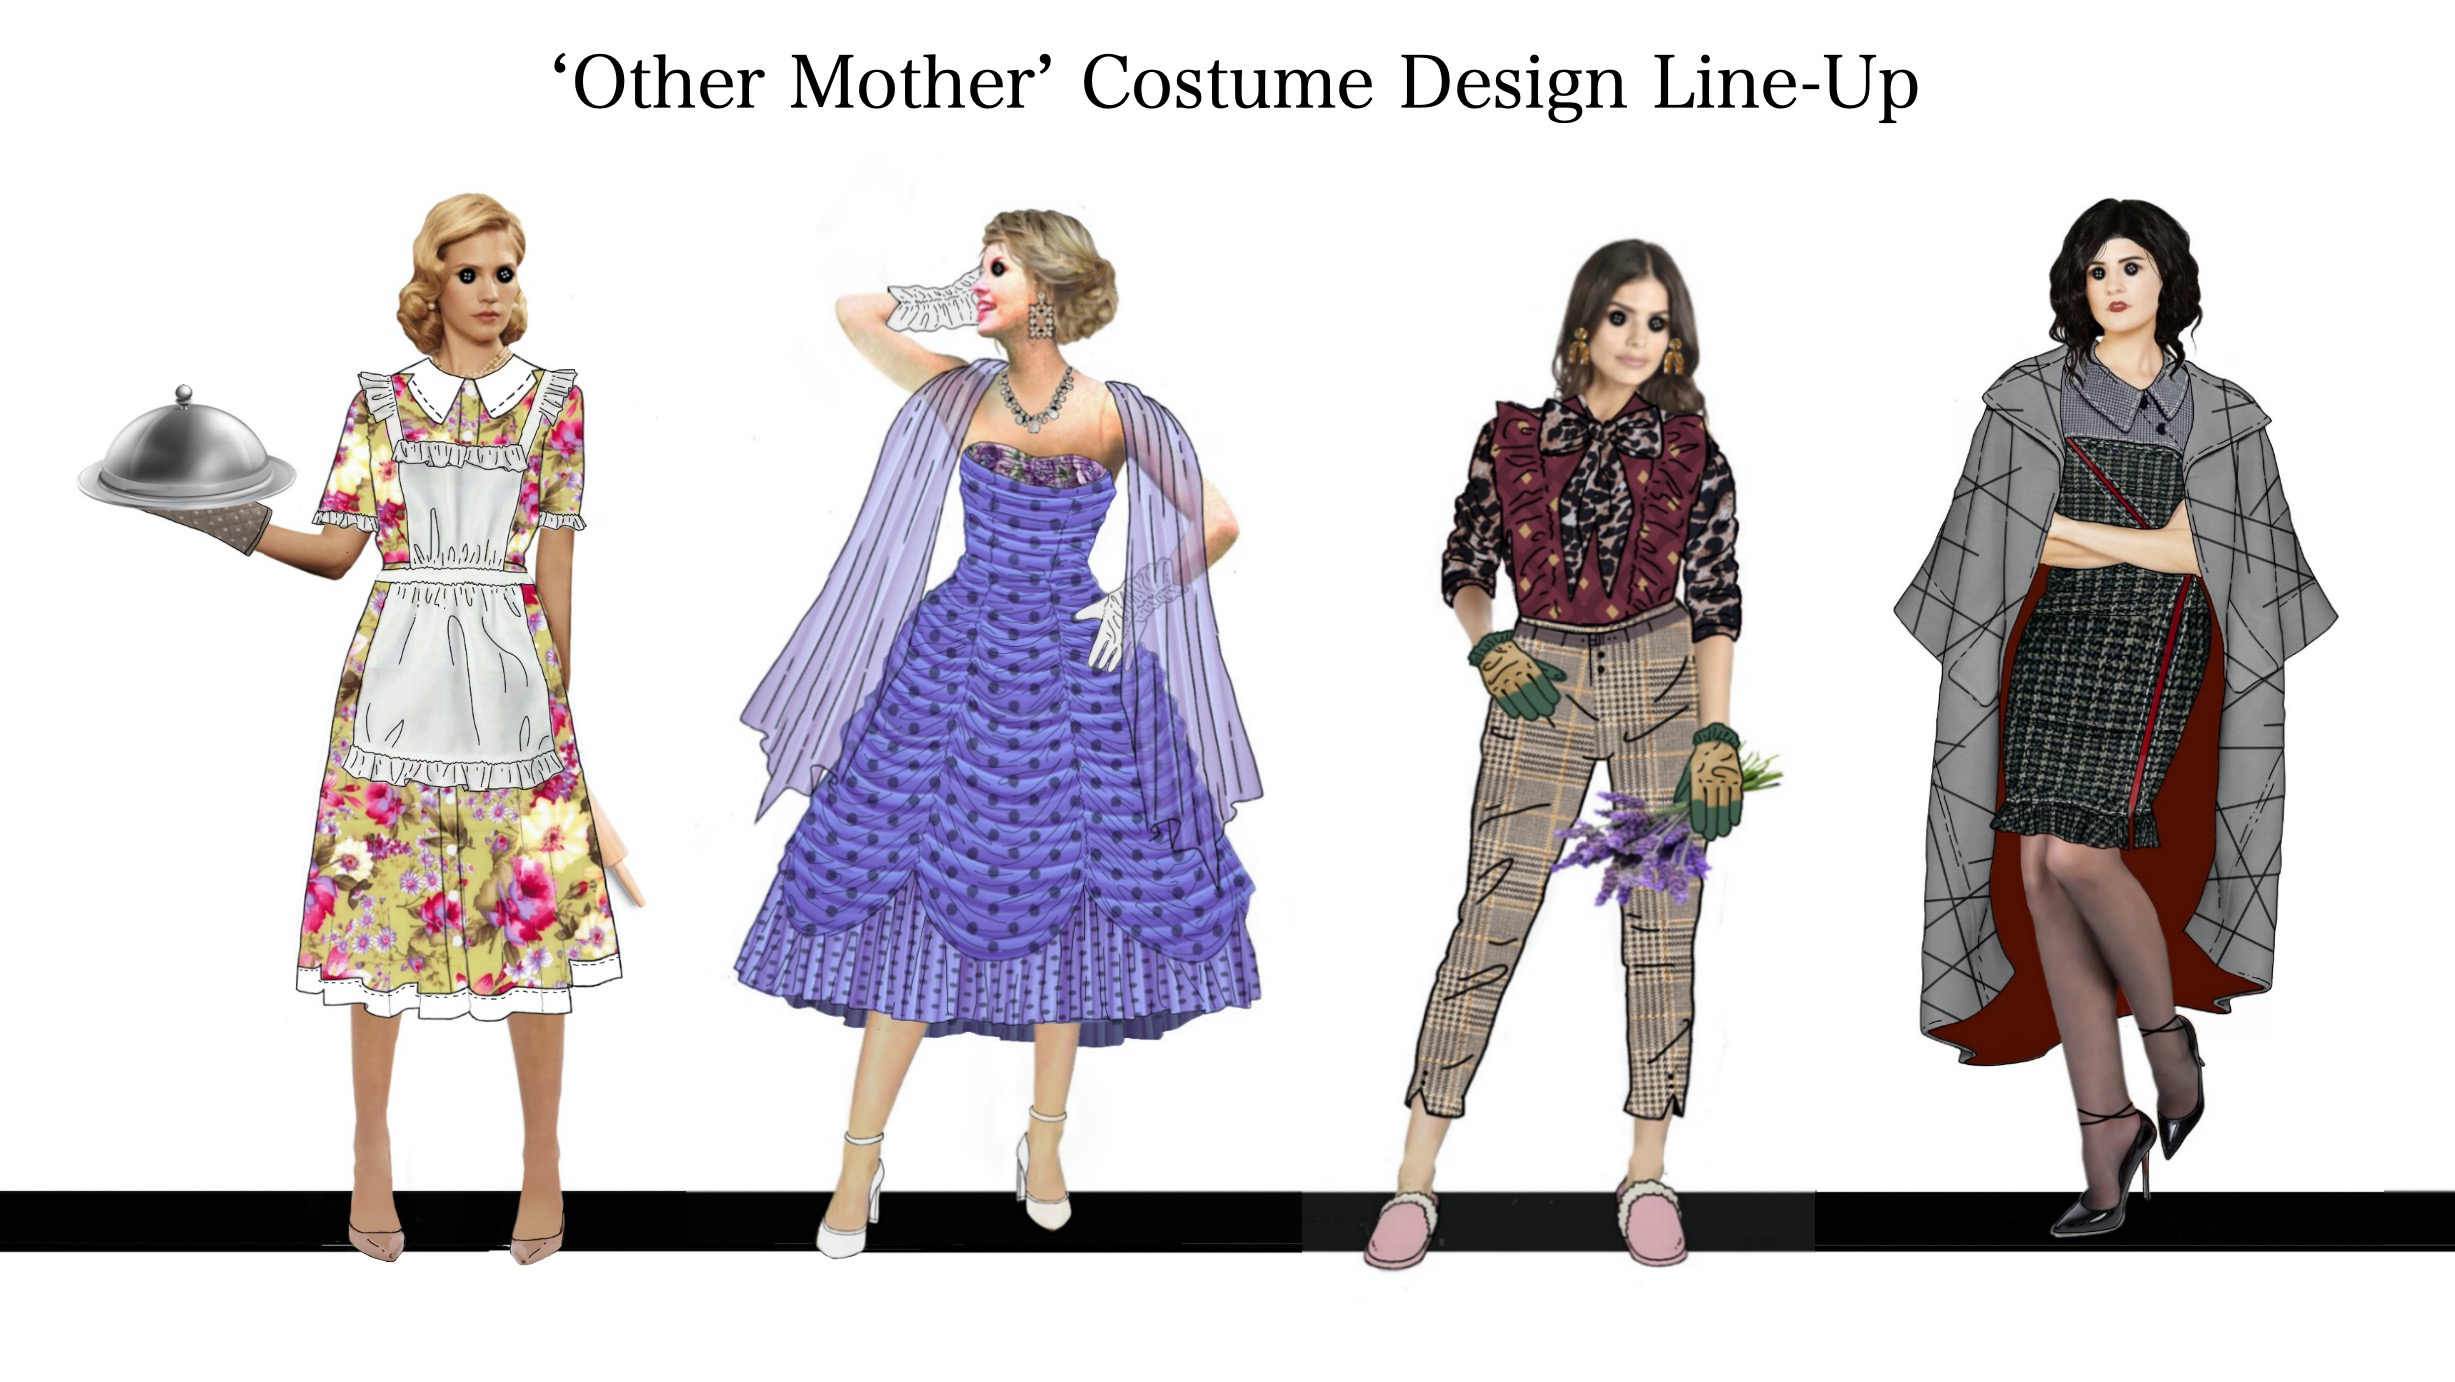 Costume Design Line-up : 'Other Mother'